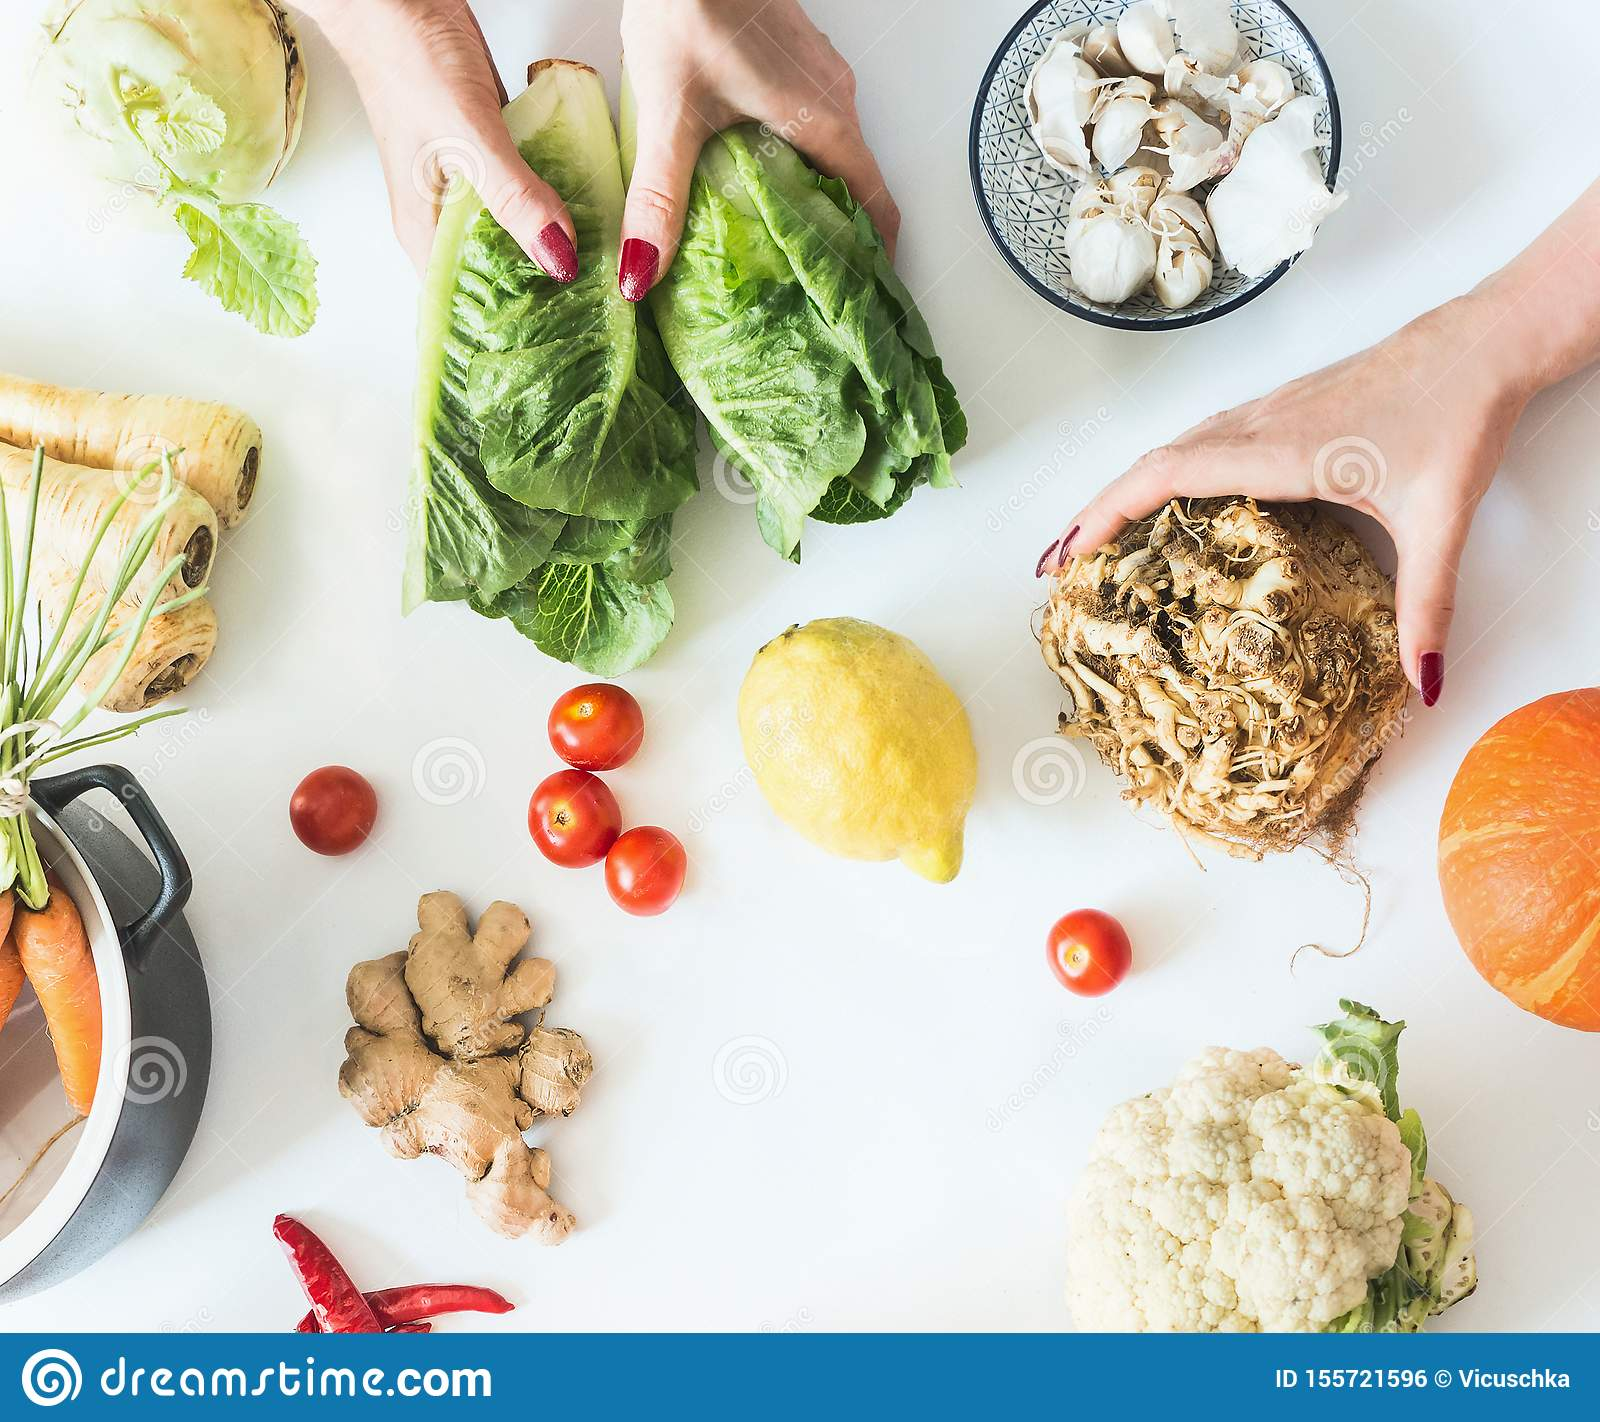 Female girls hands holding various low carb vegetables on white background with pot, top view. Flat lay. Tasty diet cooking.